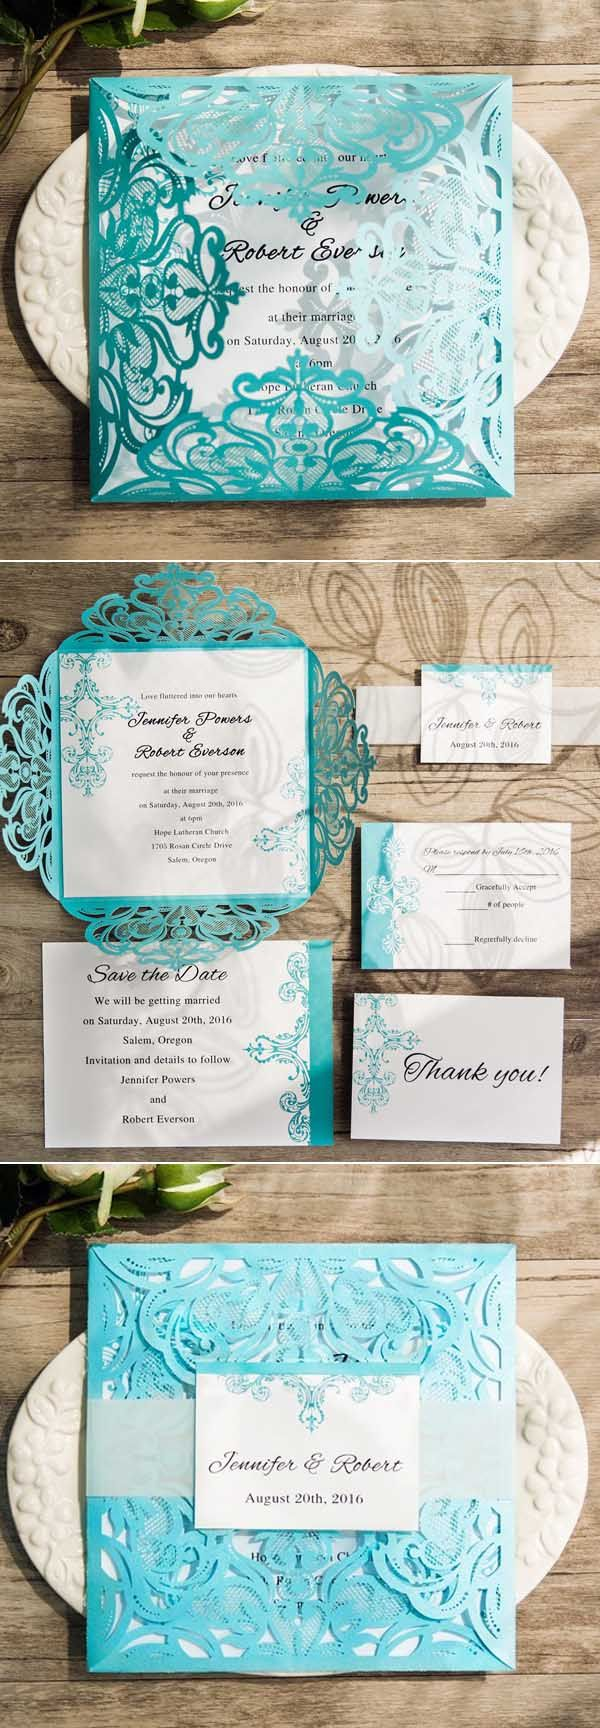 tiffany wedding invitations tiffany blue wedding invitations Awesome Ideas For Your Tiffany Blue Themed Wedding